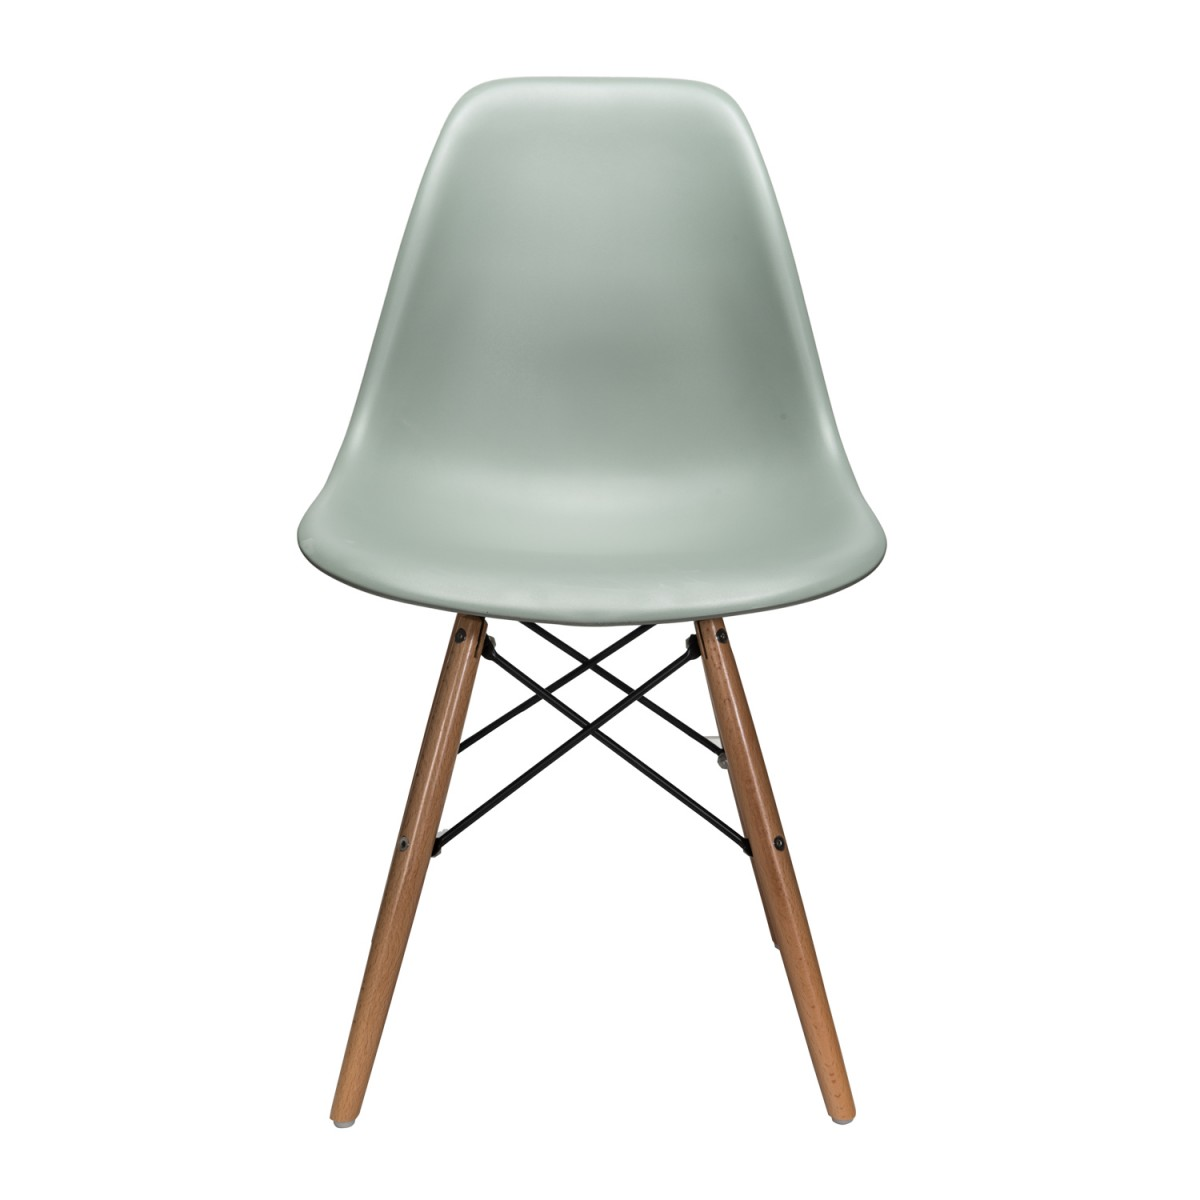 eiffel dining chair with beech legs target furniture folding chairs nature series moss gray dsw molded plastic side